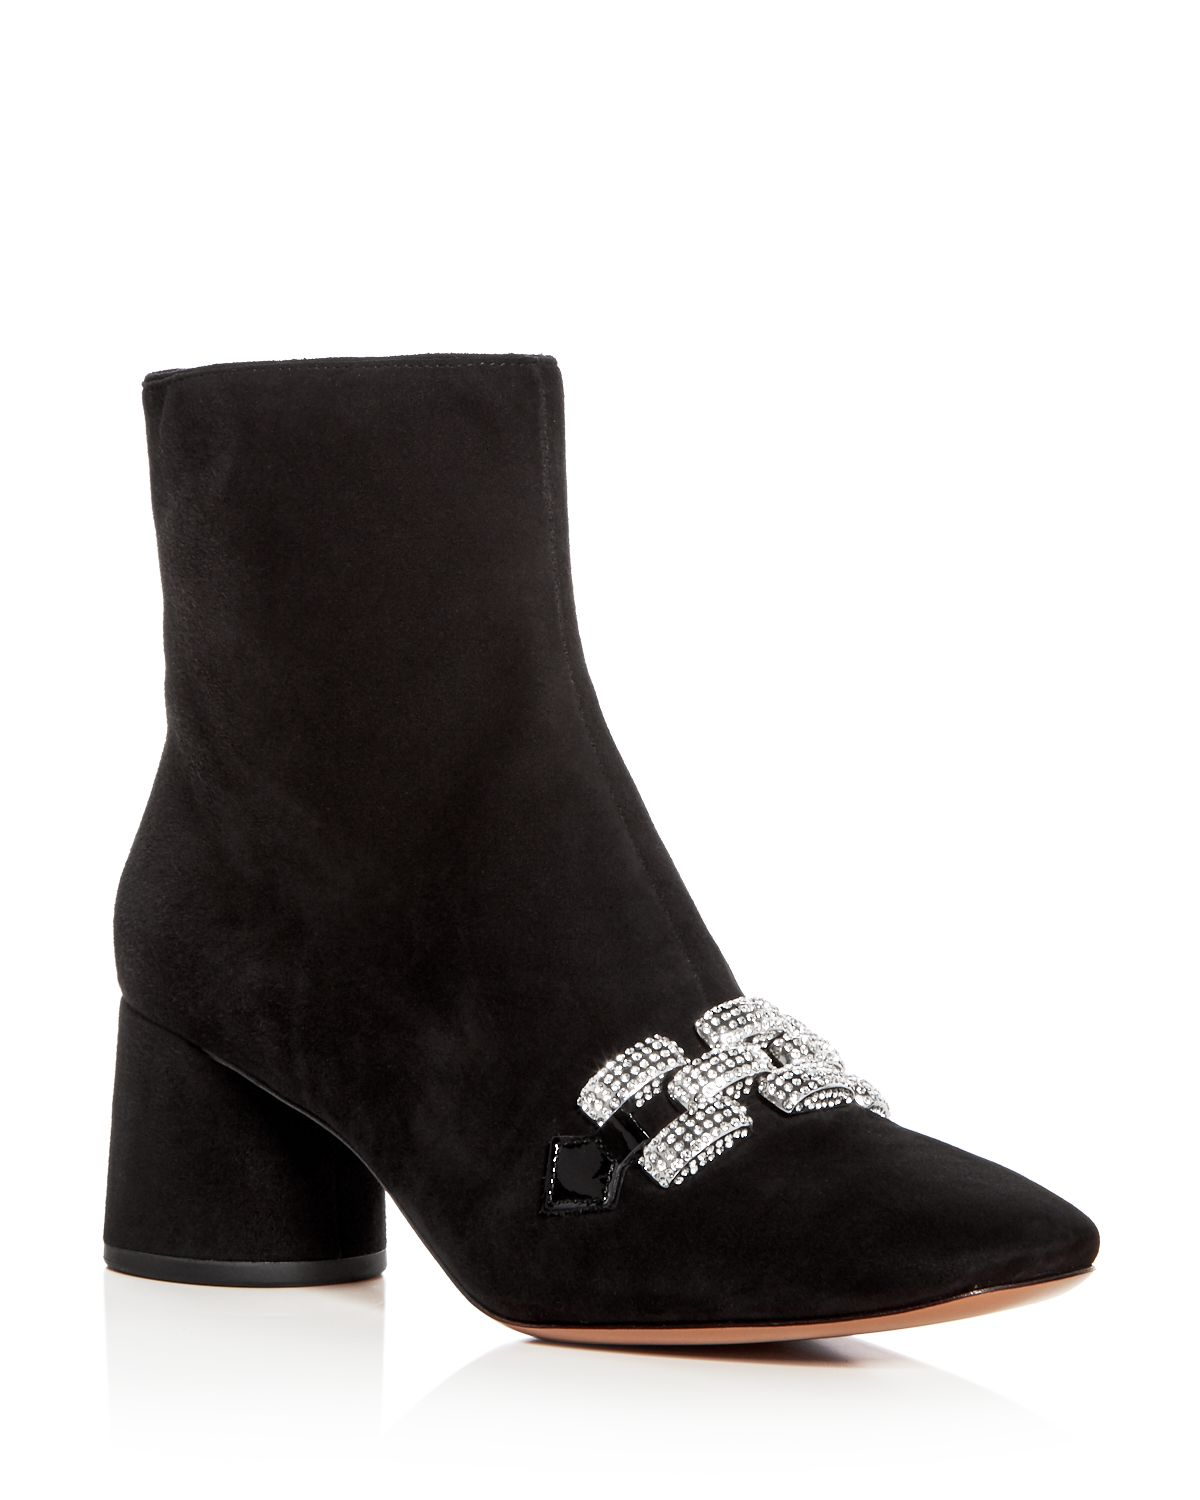 Women's Embellished Chain Suede Block Heel Booties by Marc Jacobs